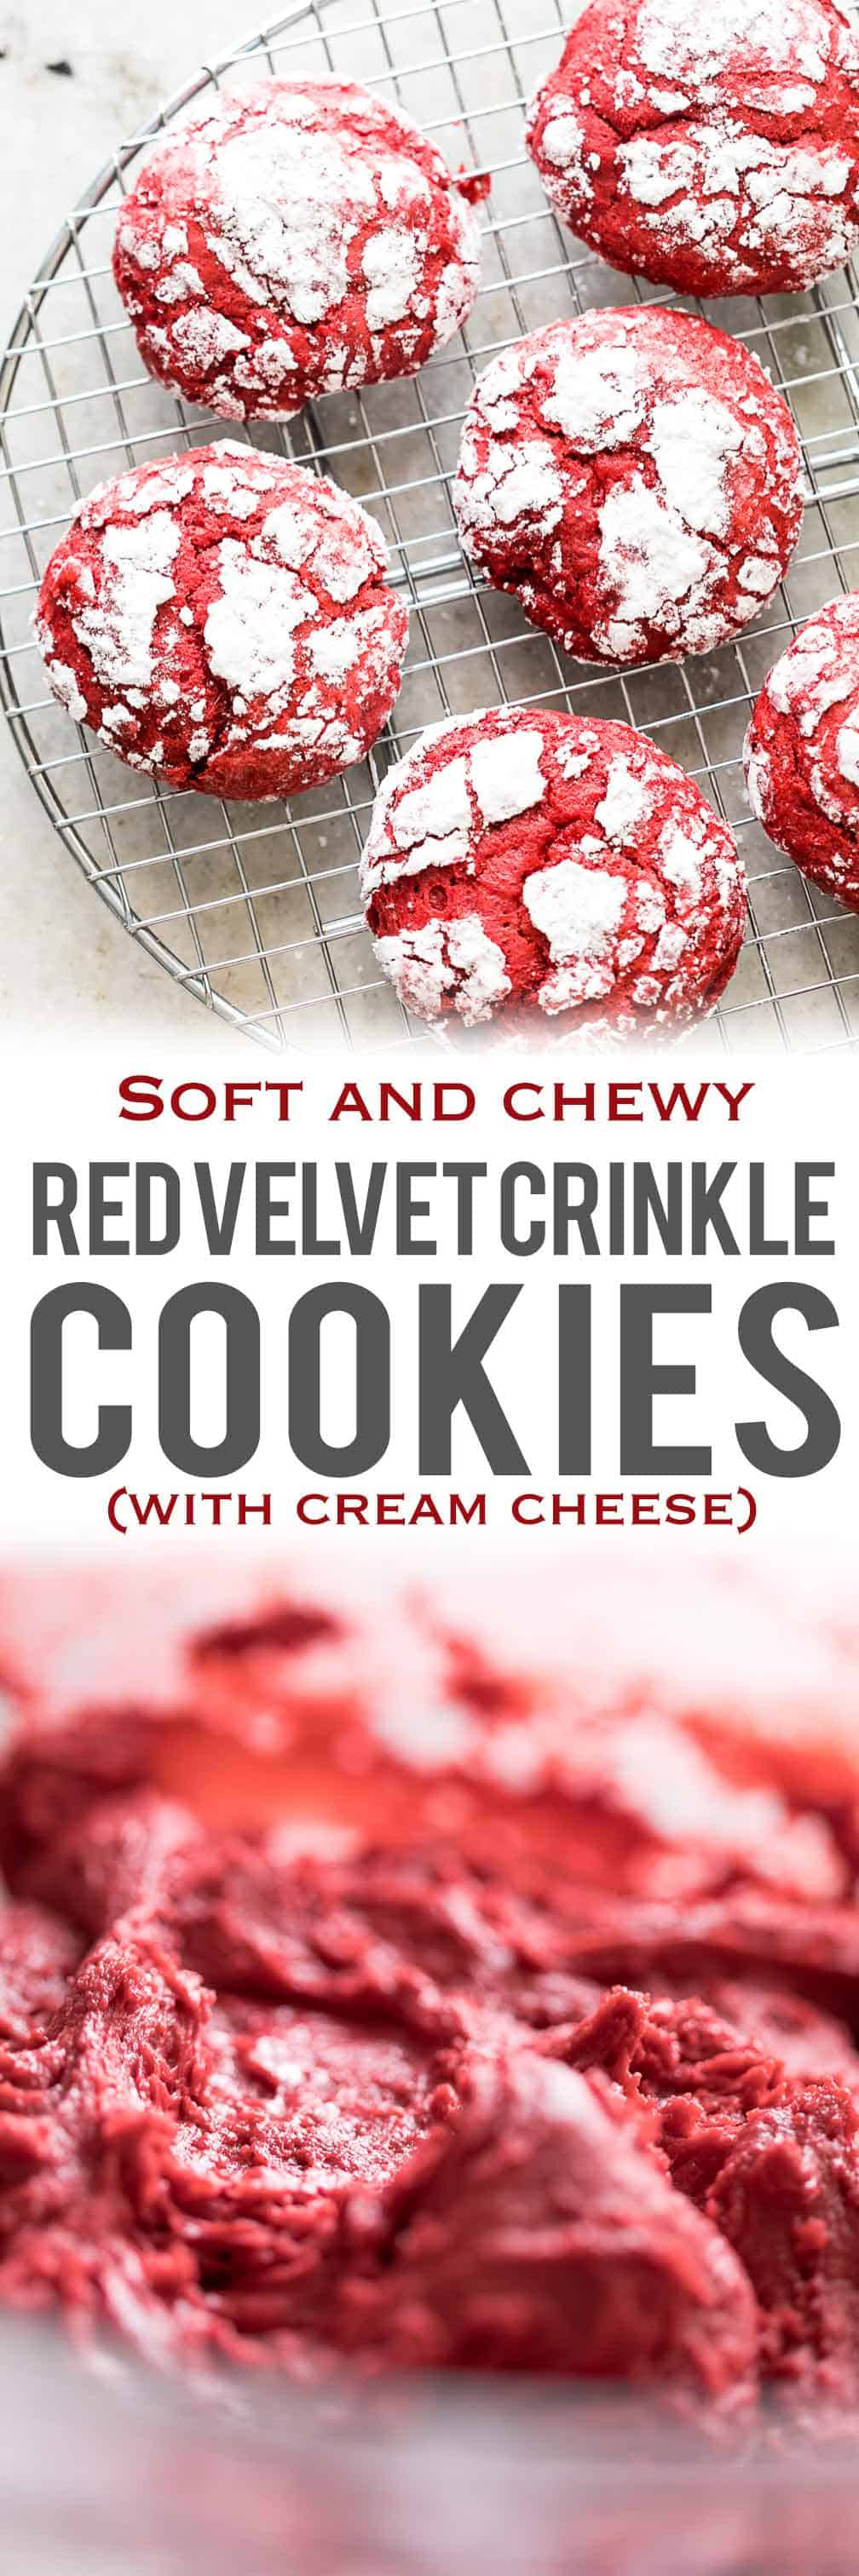 Red Velvet Crinkle Cookies are soft, chewy cookies that are made from scratch with cream cheese and will fit right in with your holiday plans. They are best enjoyed when left chewy but if you like your cookies crispy, you can leave these in the oven for longer. They\'re coated in powdered sugar, which brings the natural crinkles. The dough in itself is not too sweet so the sugar coat adds perfect balance!  #myfoodstory #recipe #dessert #redvelvet #fromscratch #chewy #homemade #easy